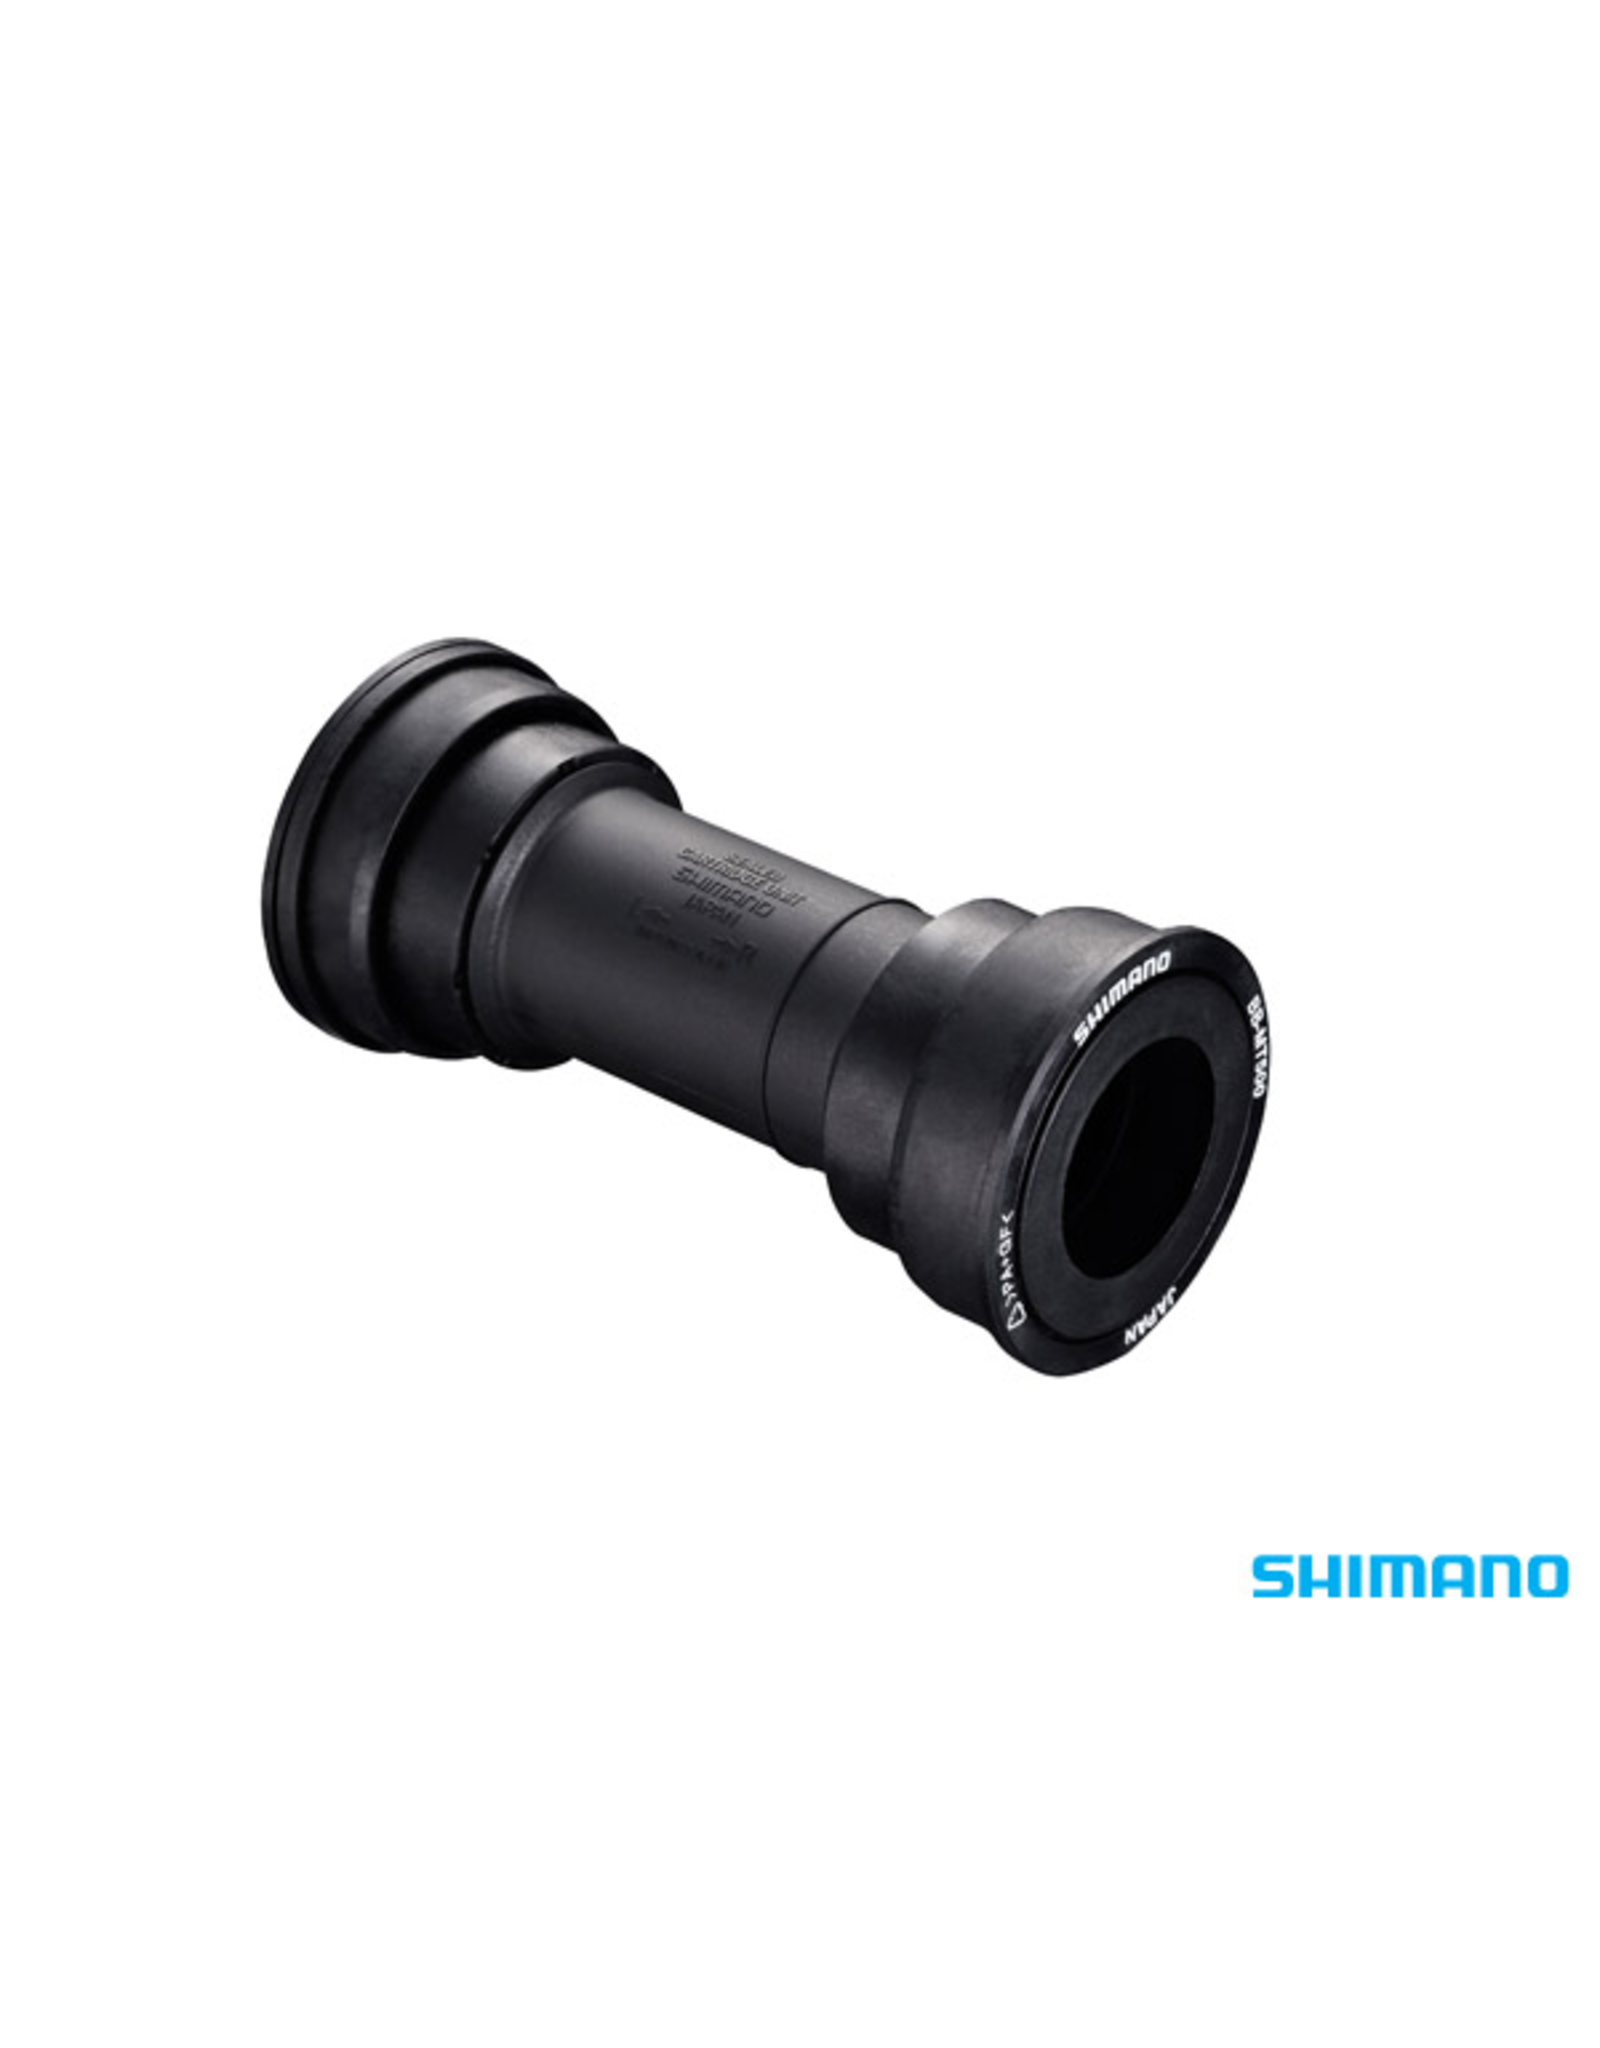 Shimano BOTTOM BRACKET SHIMANO DEORE BB-MT500 89/92MM PRESSFIT